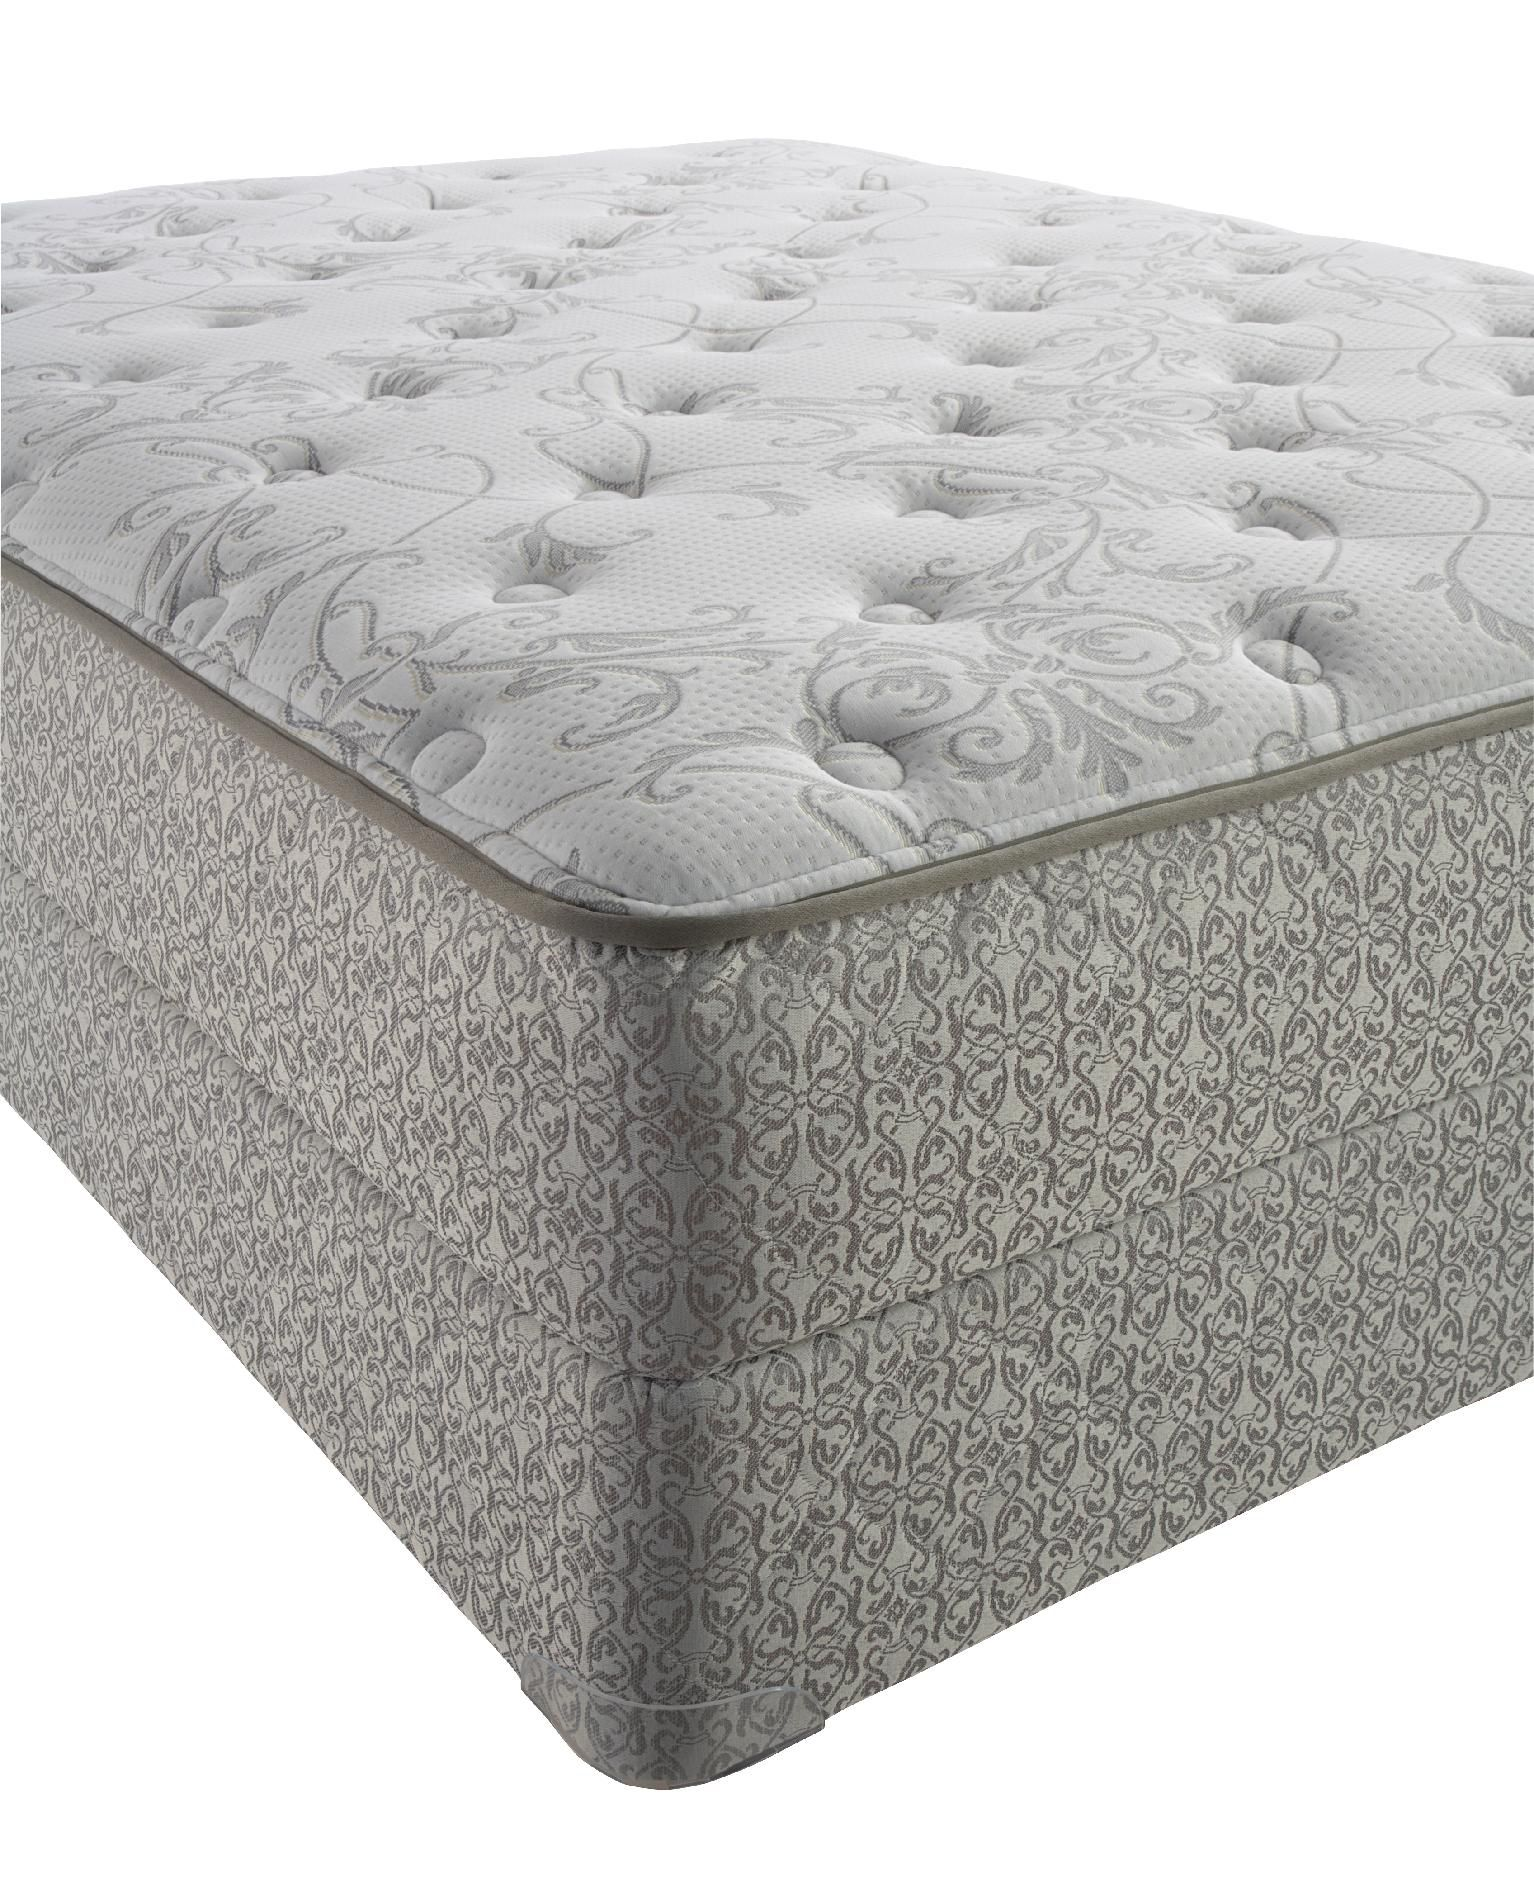 Valinor-Select-Plush-Queen-Mattress-Only